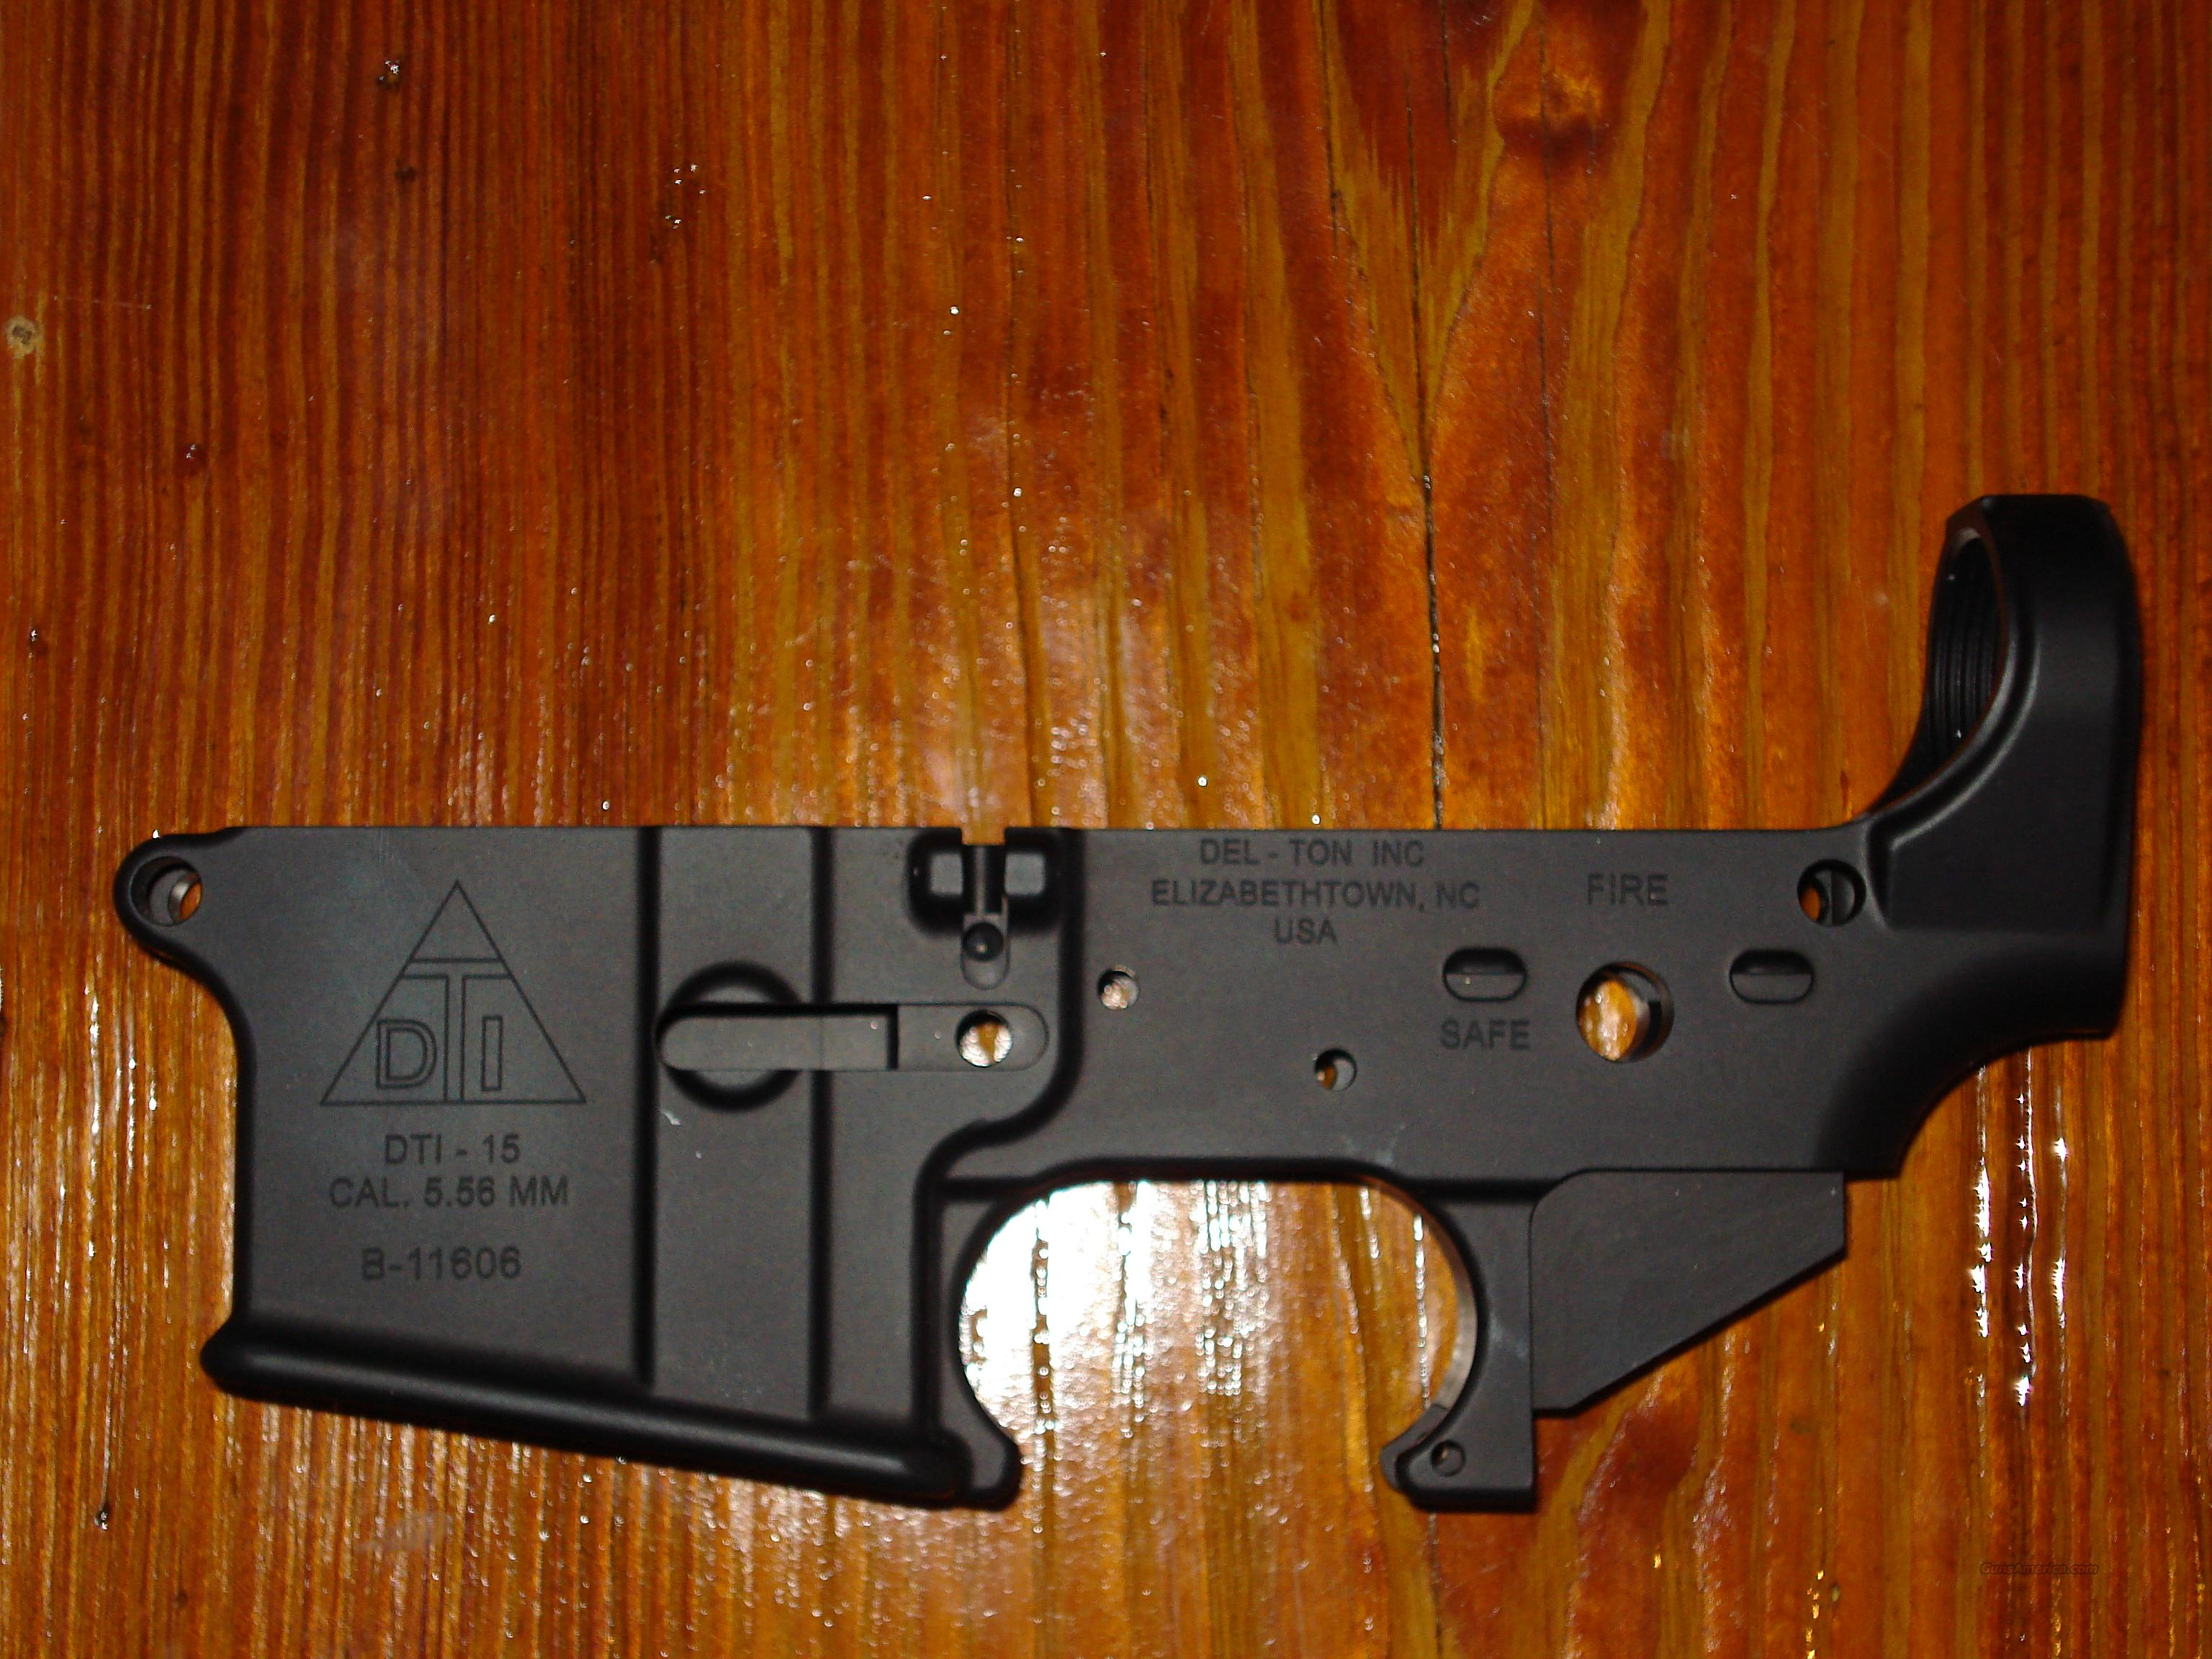 Del-ton DTI stripped AR-15 lower 5.56 .223 SALE  Guns > Rifles > AR-15 Rifles - Small Manufacturers > Lower Only